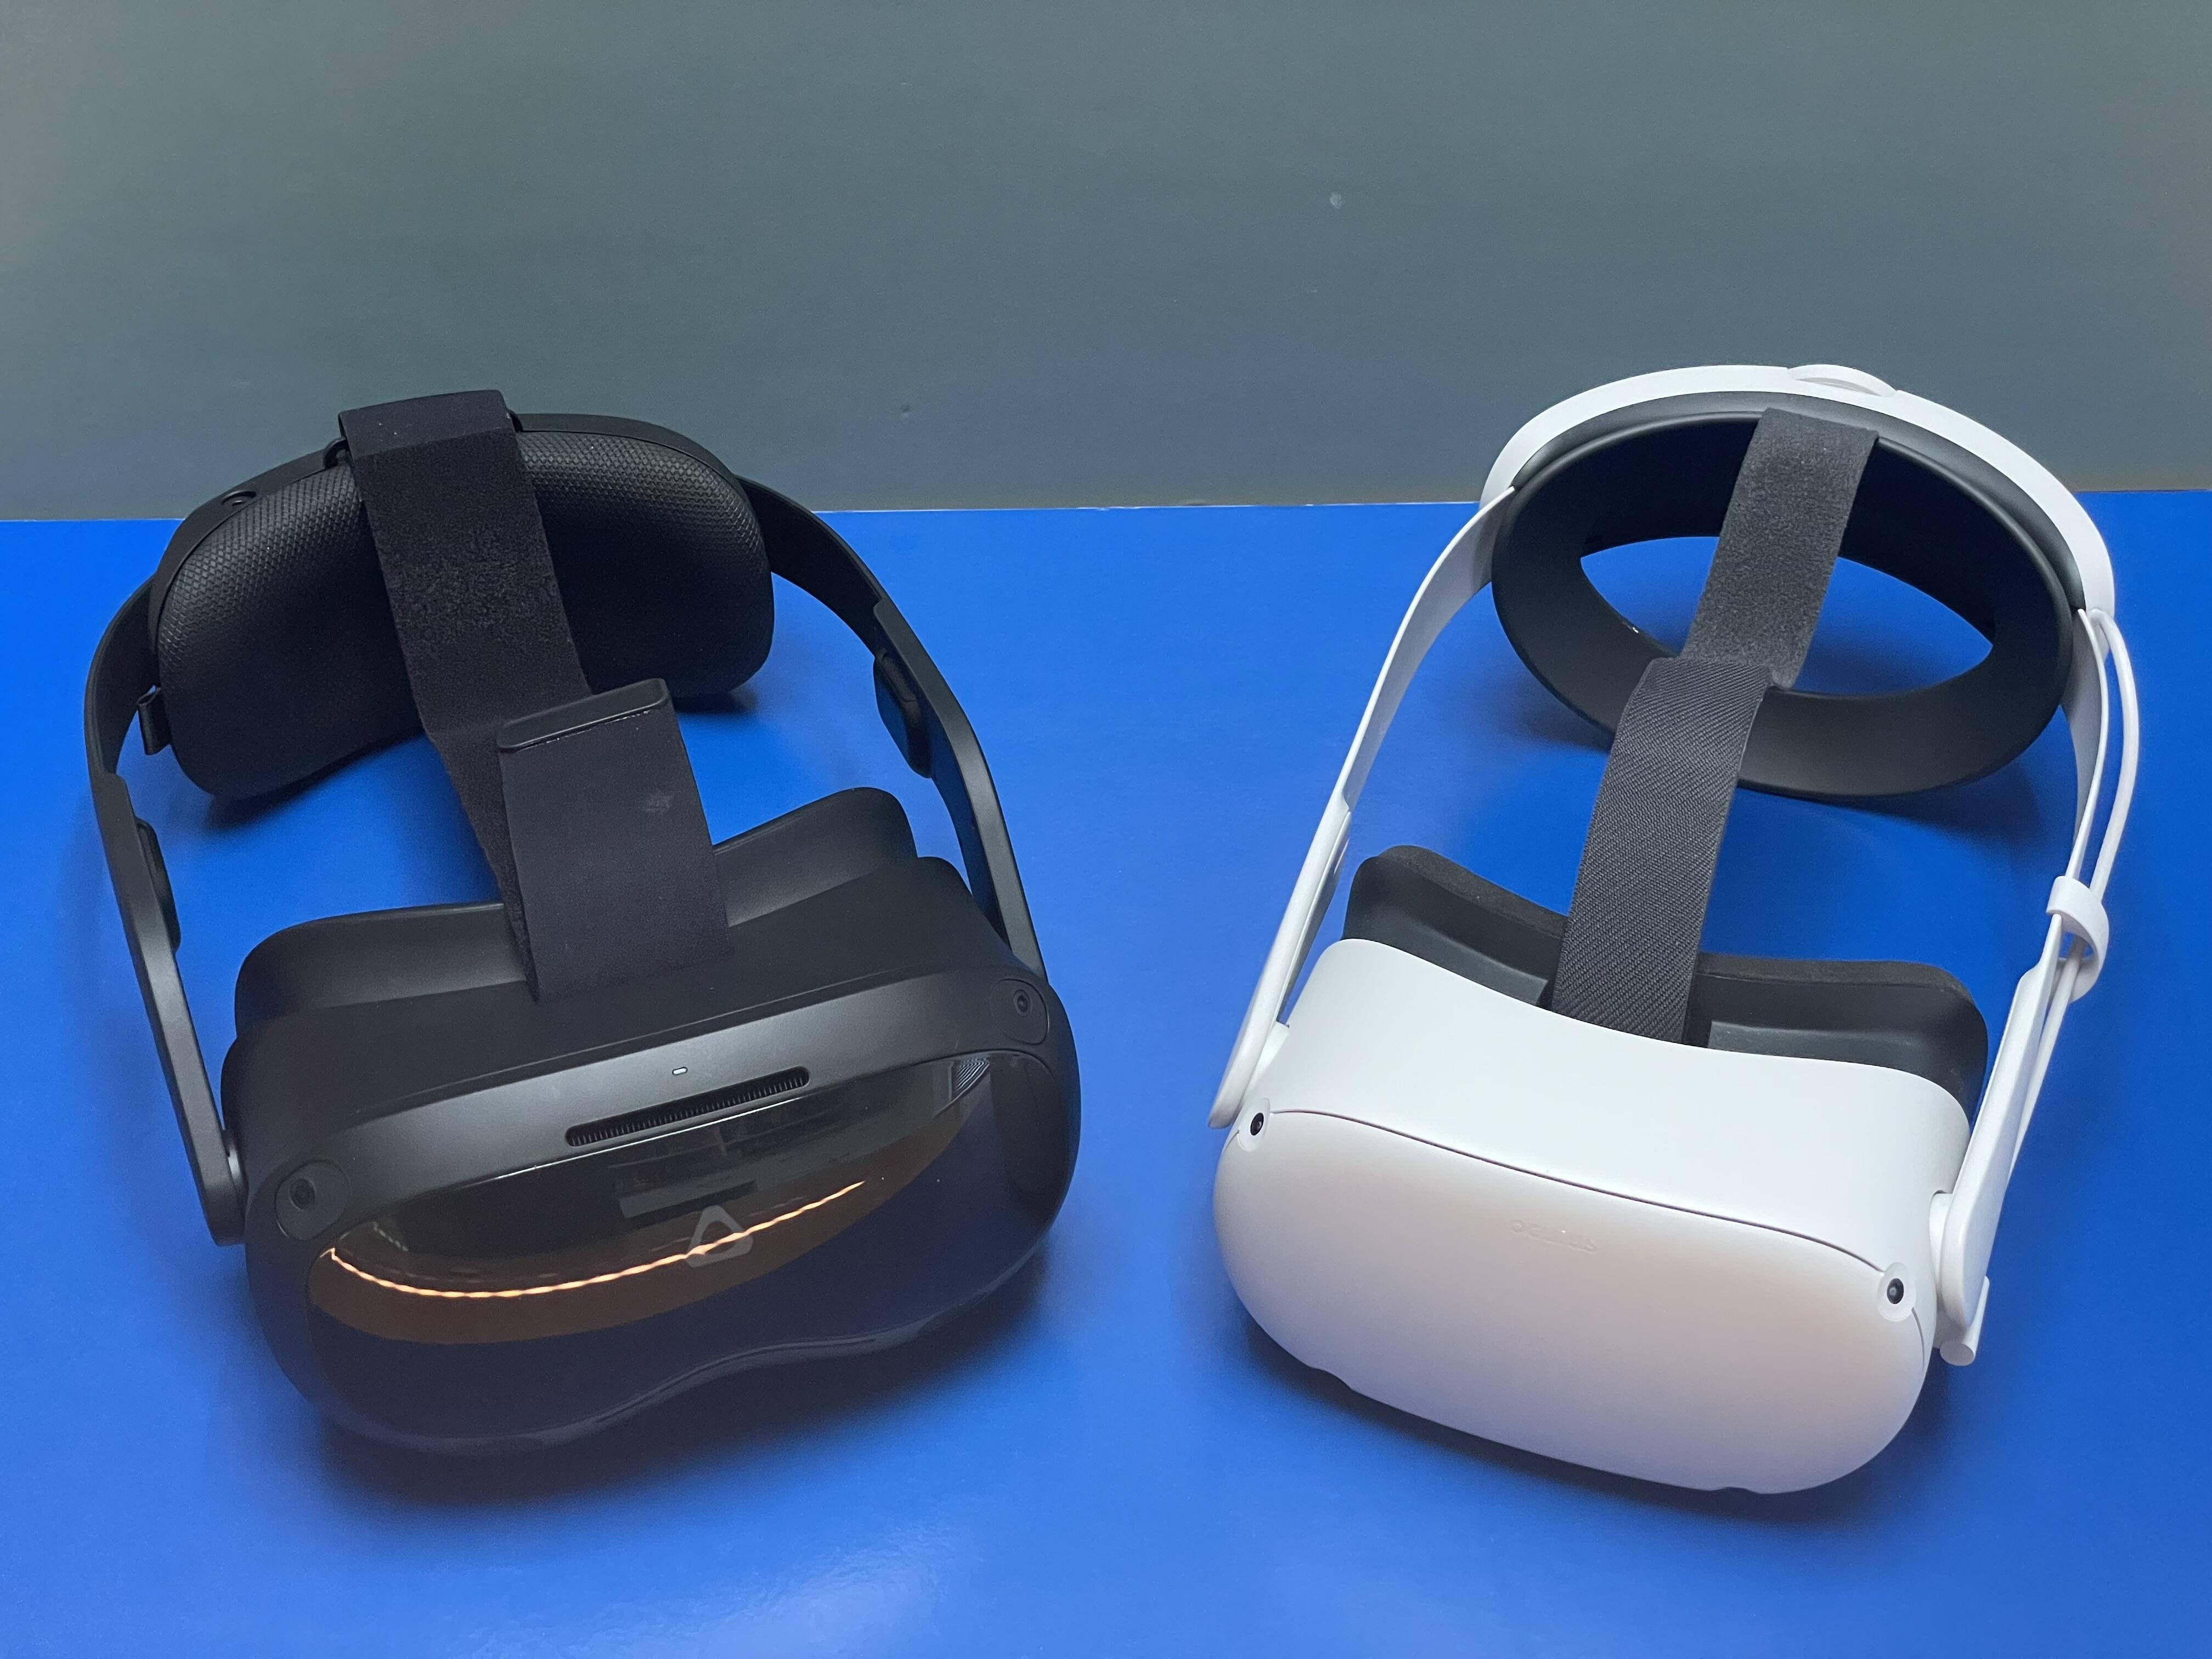 <p>The HTC Vive Focus 3 (left) next to the Oculus Quest 2 (right) with its battery strap: similar sizes, similar processors, but the Focus 3 ramps up display and features.</p>